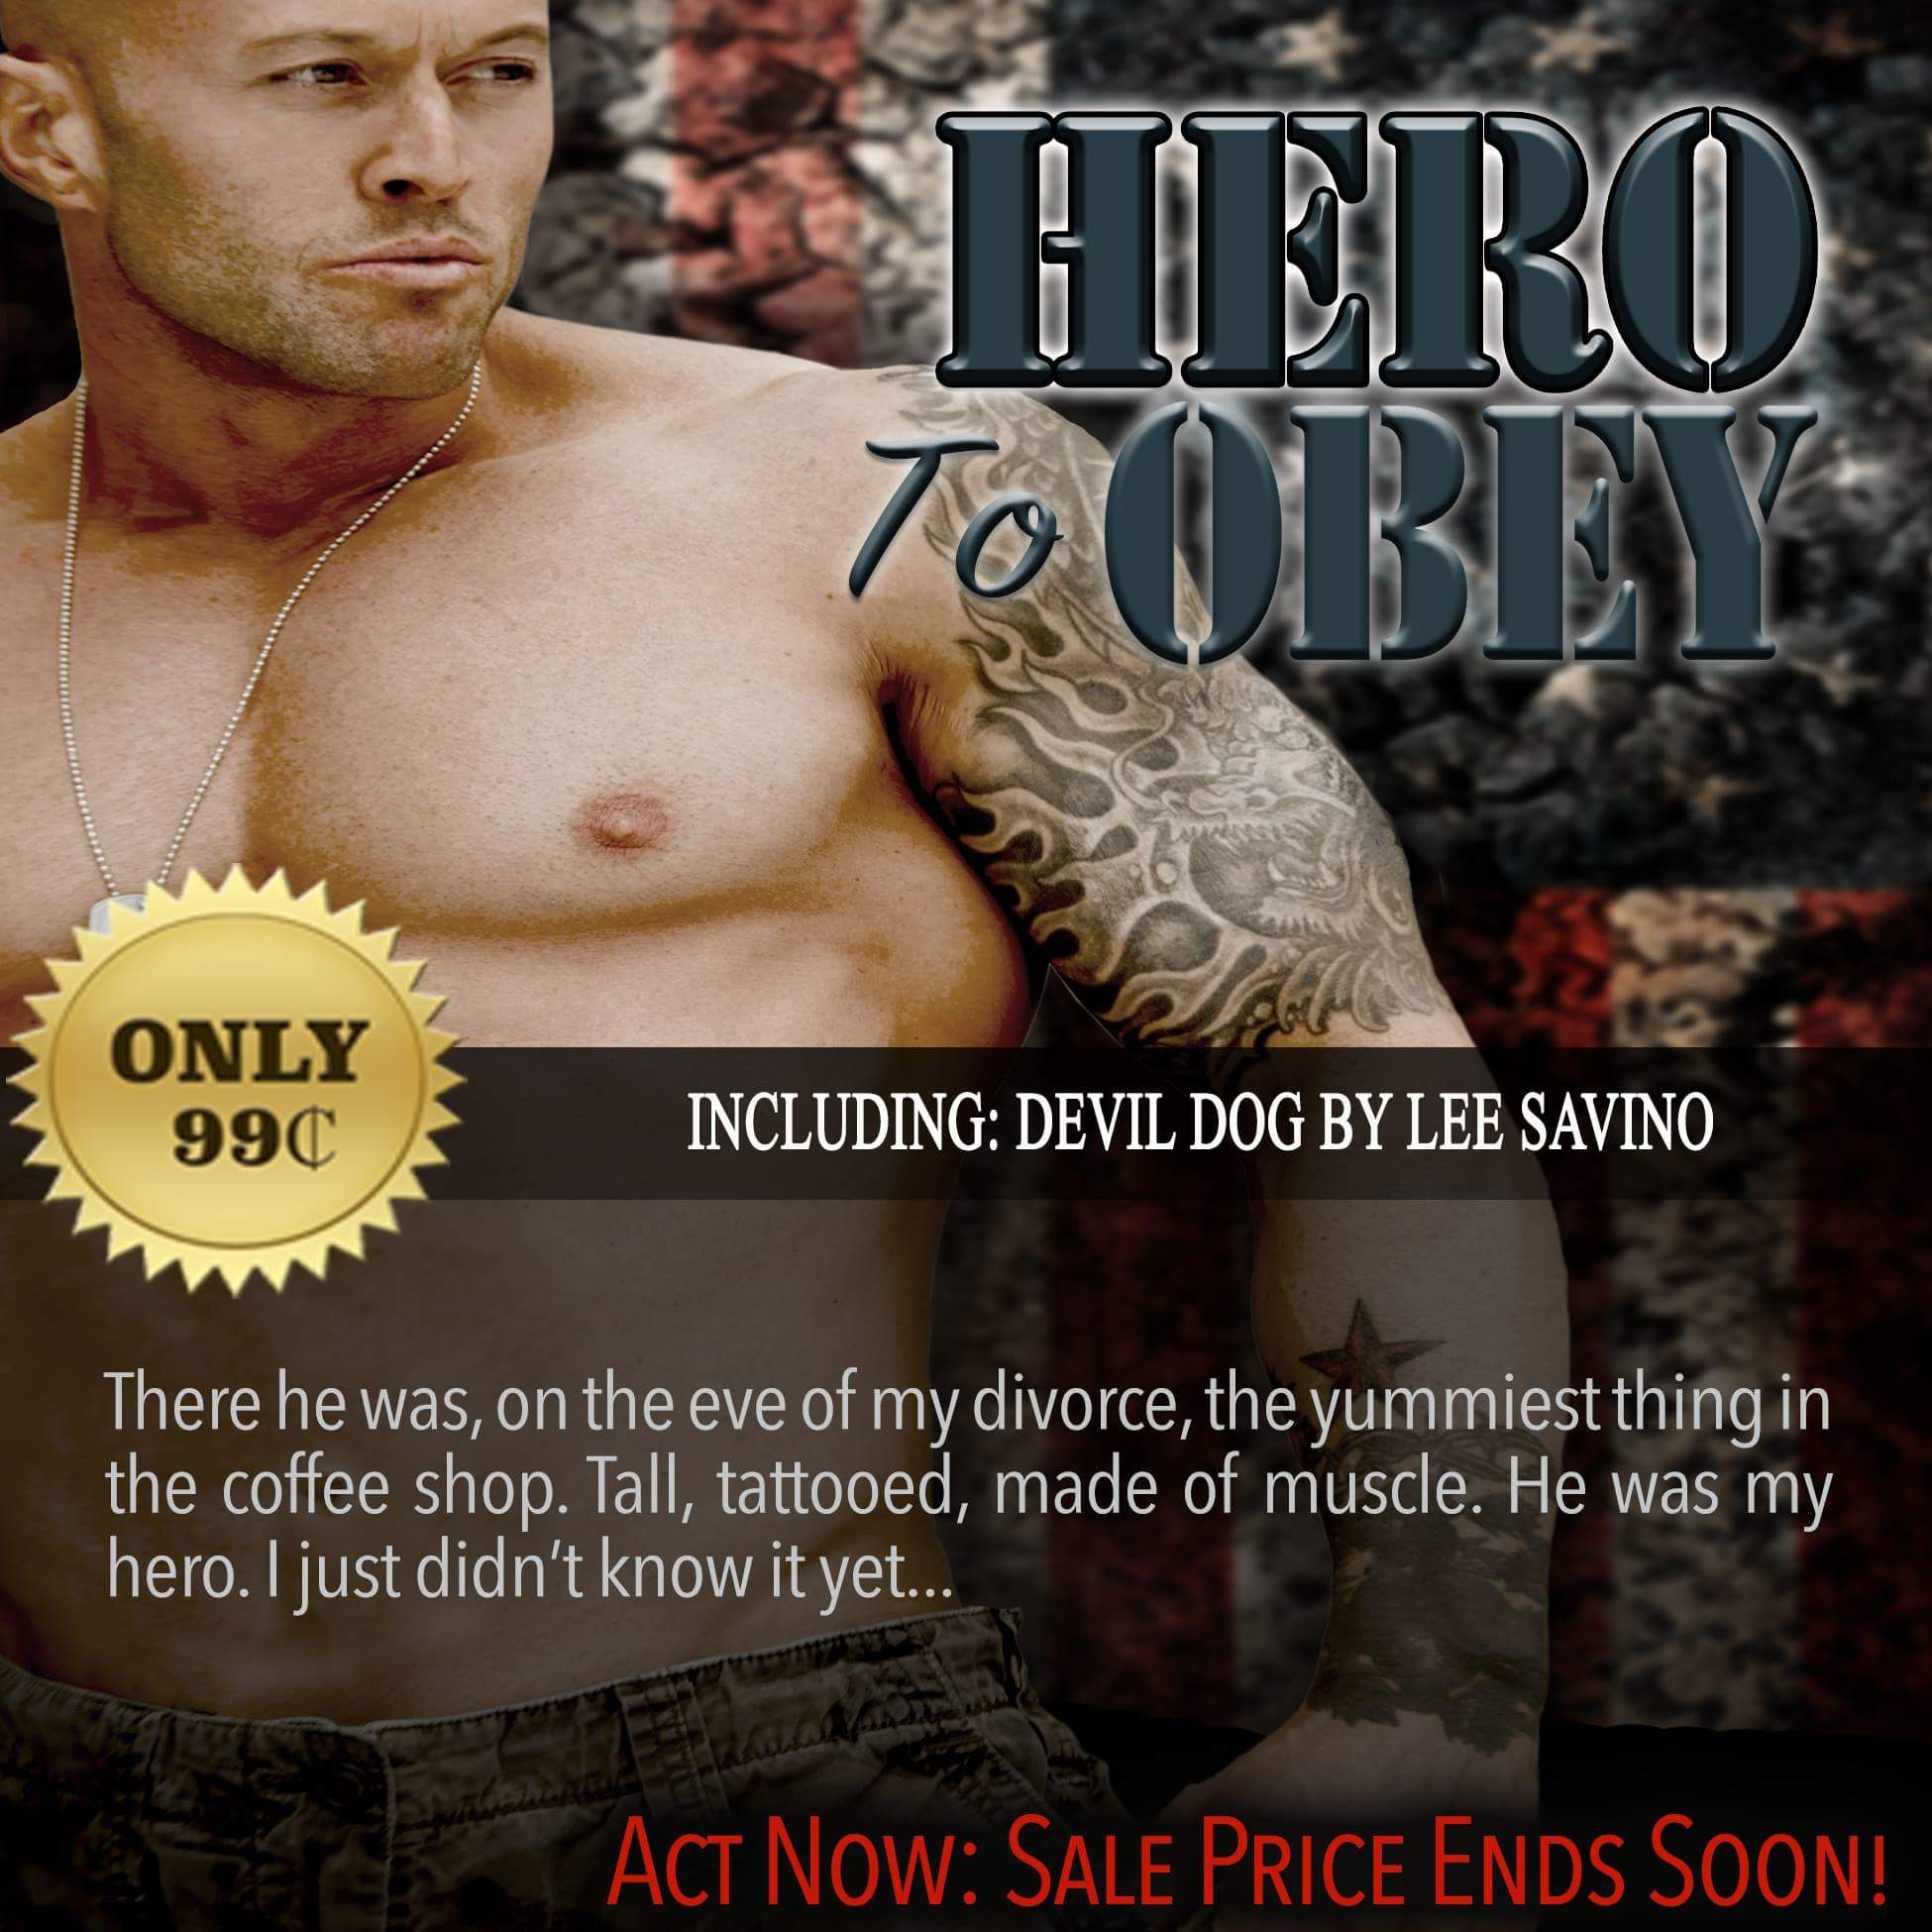 Hero To Obey Book Cover Model Actor John Joseph Quinlan by Lee Savino #JohnQuinlan #Hero2obey